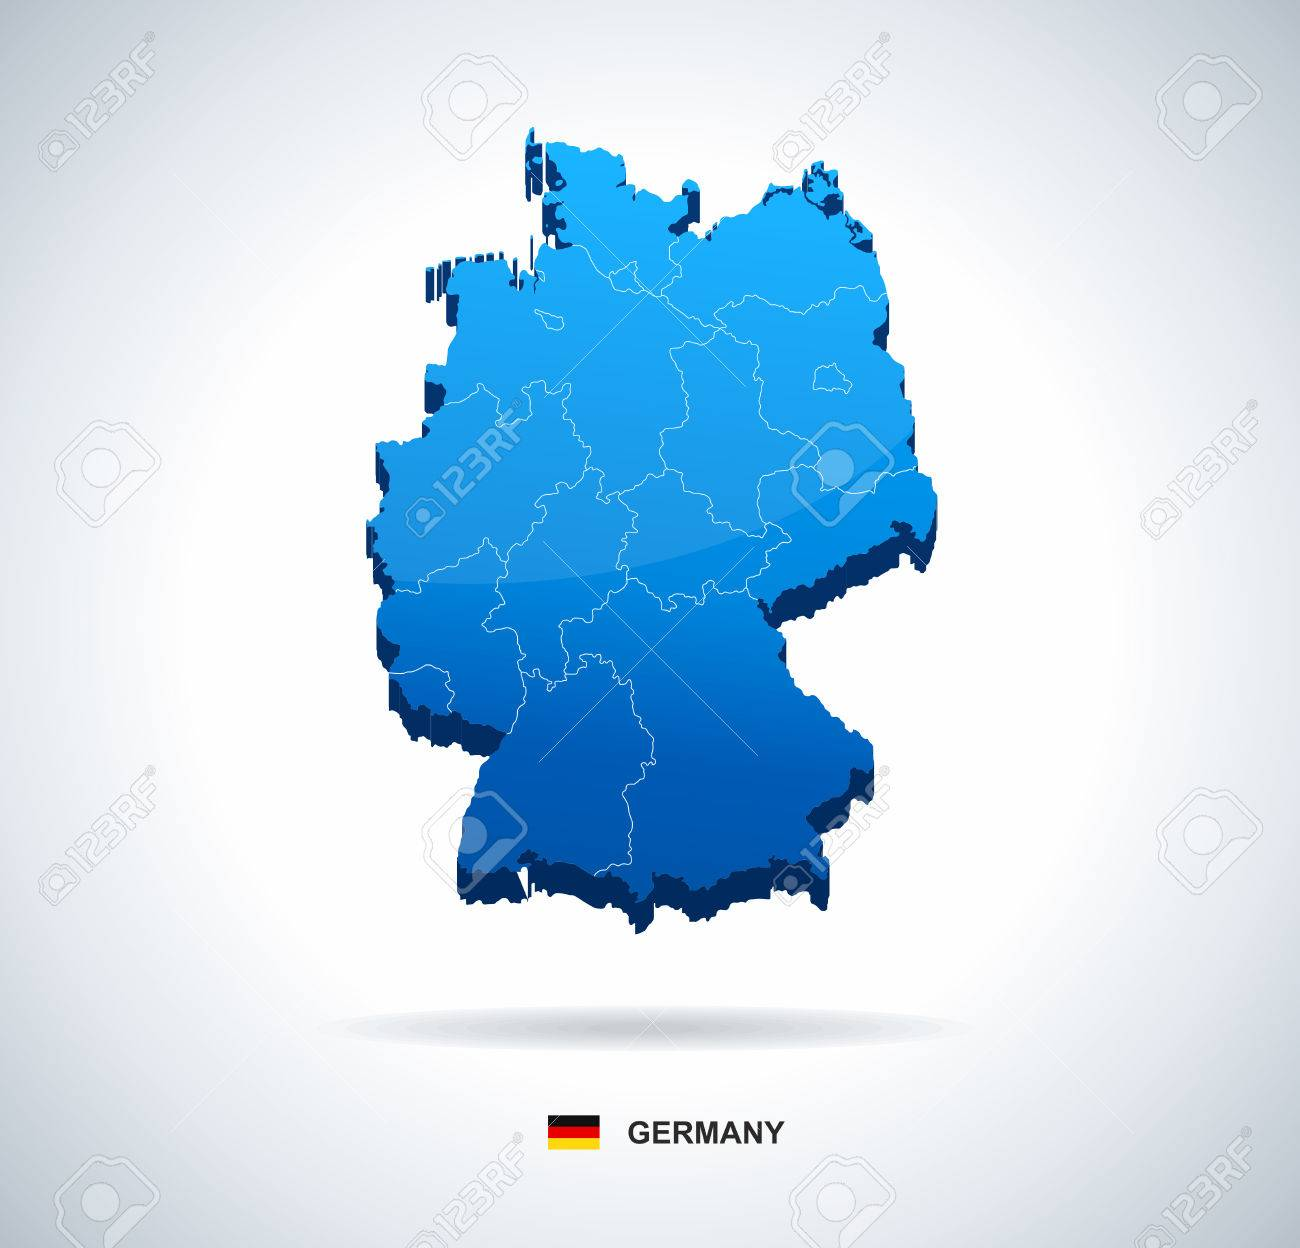 Map Of Germany 3d.Germany Map Three Dimensional Vector Illustration Map Of Germany